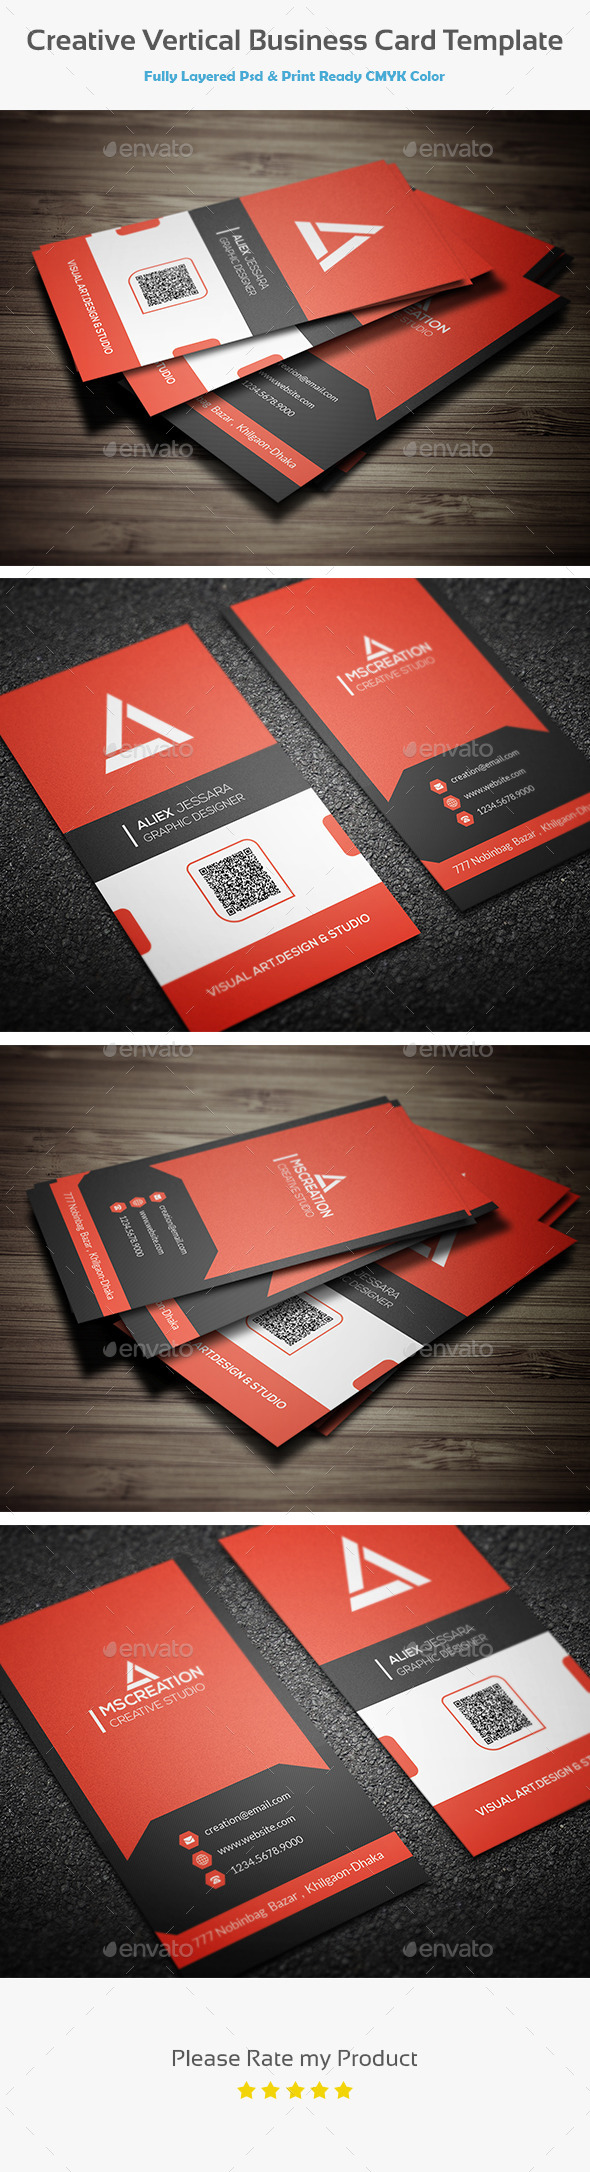 Creative Vertical Business Card Template - Creative Business Cards